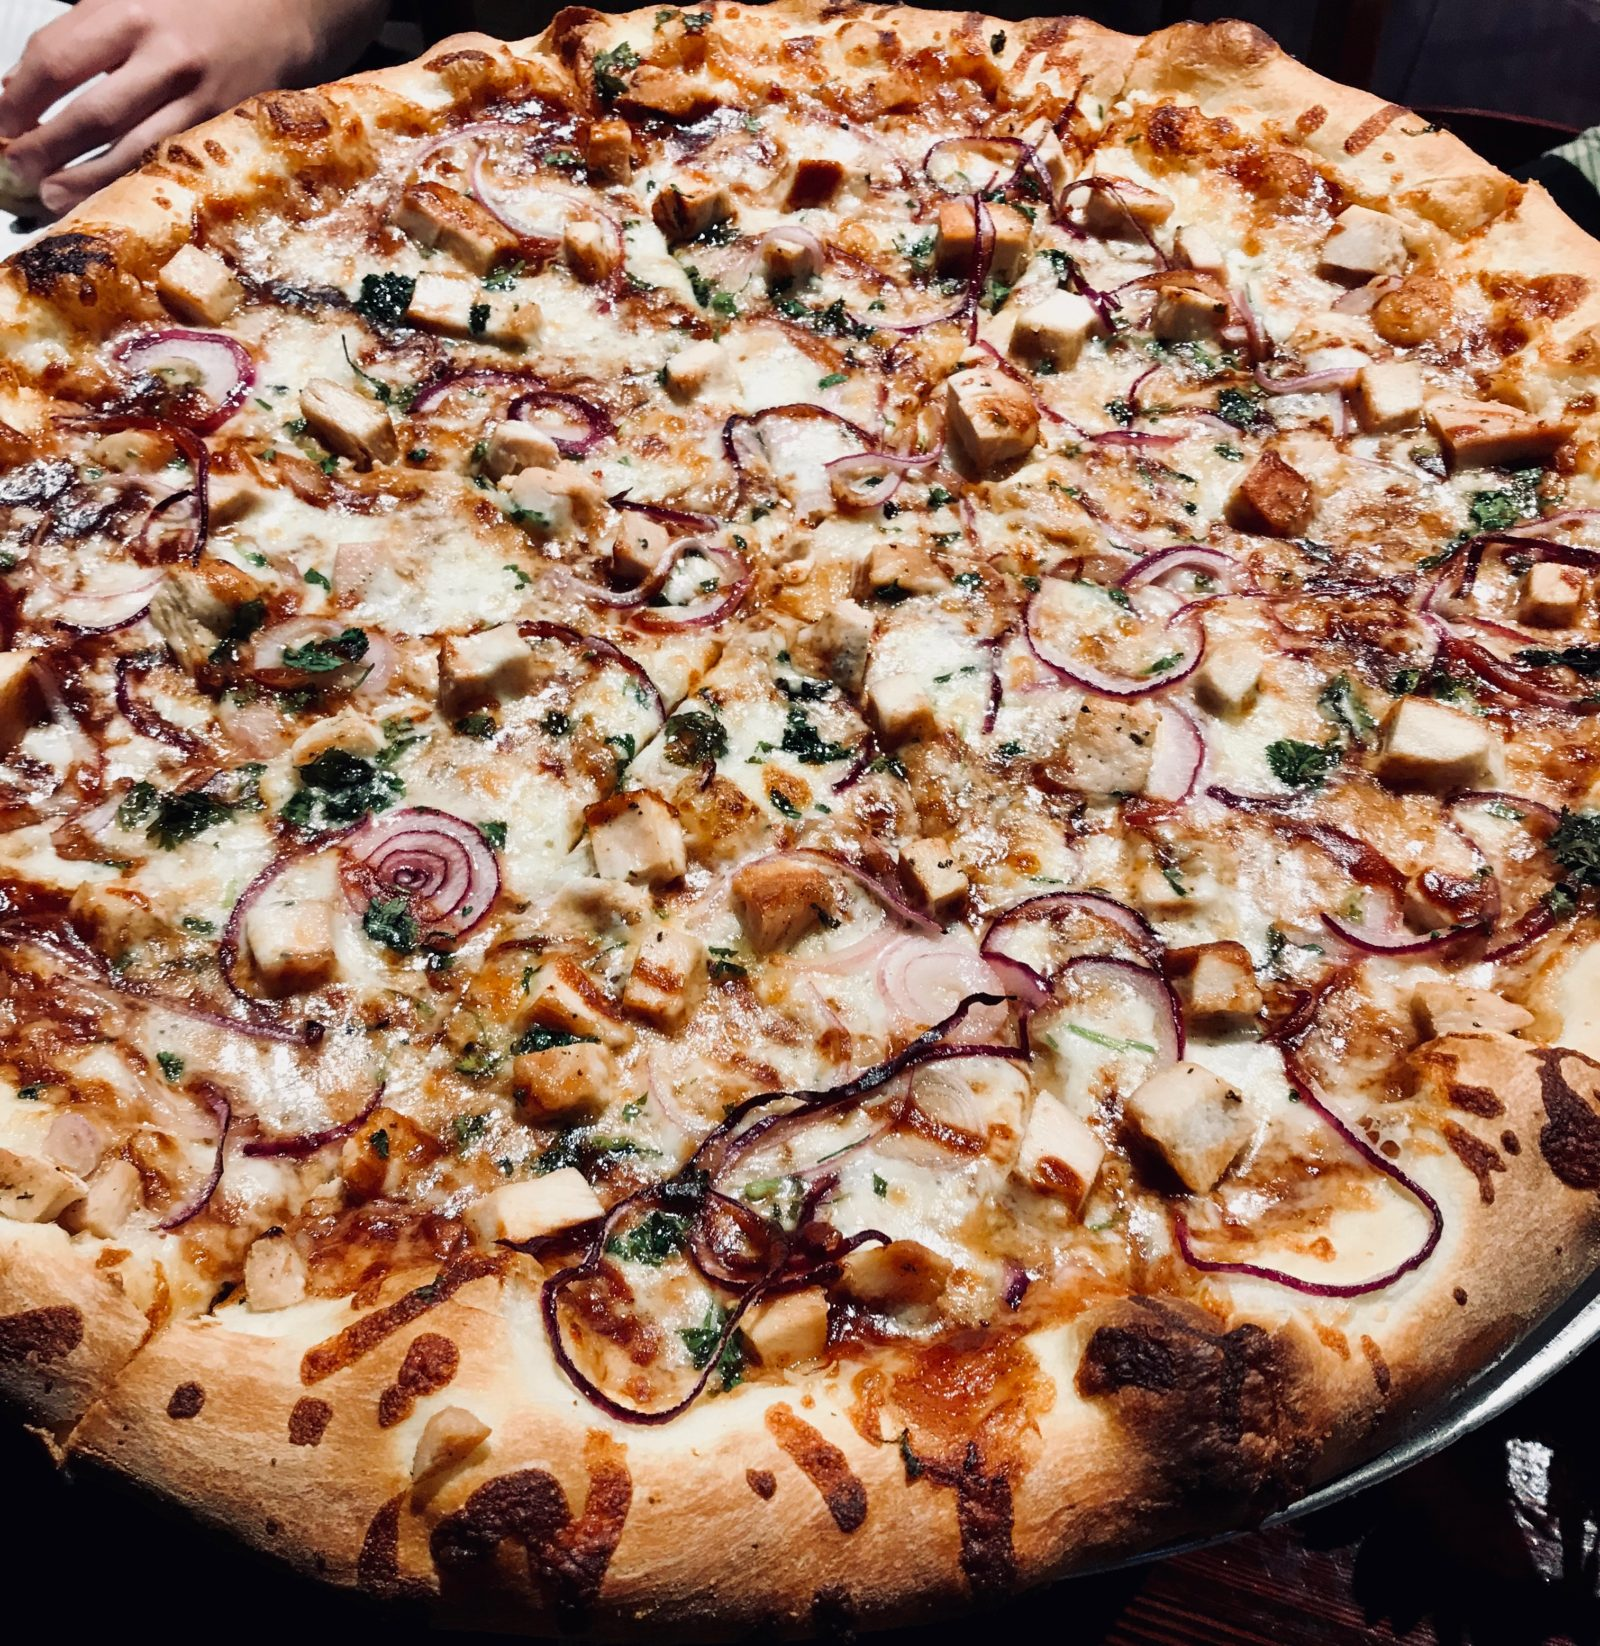 Pick of the Week - Giant Rustic Pizza - 20 inch Malibu Chicken pizza